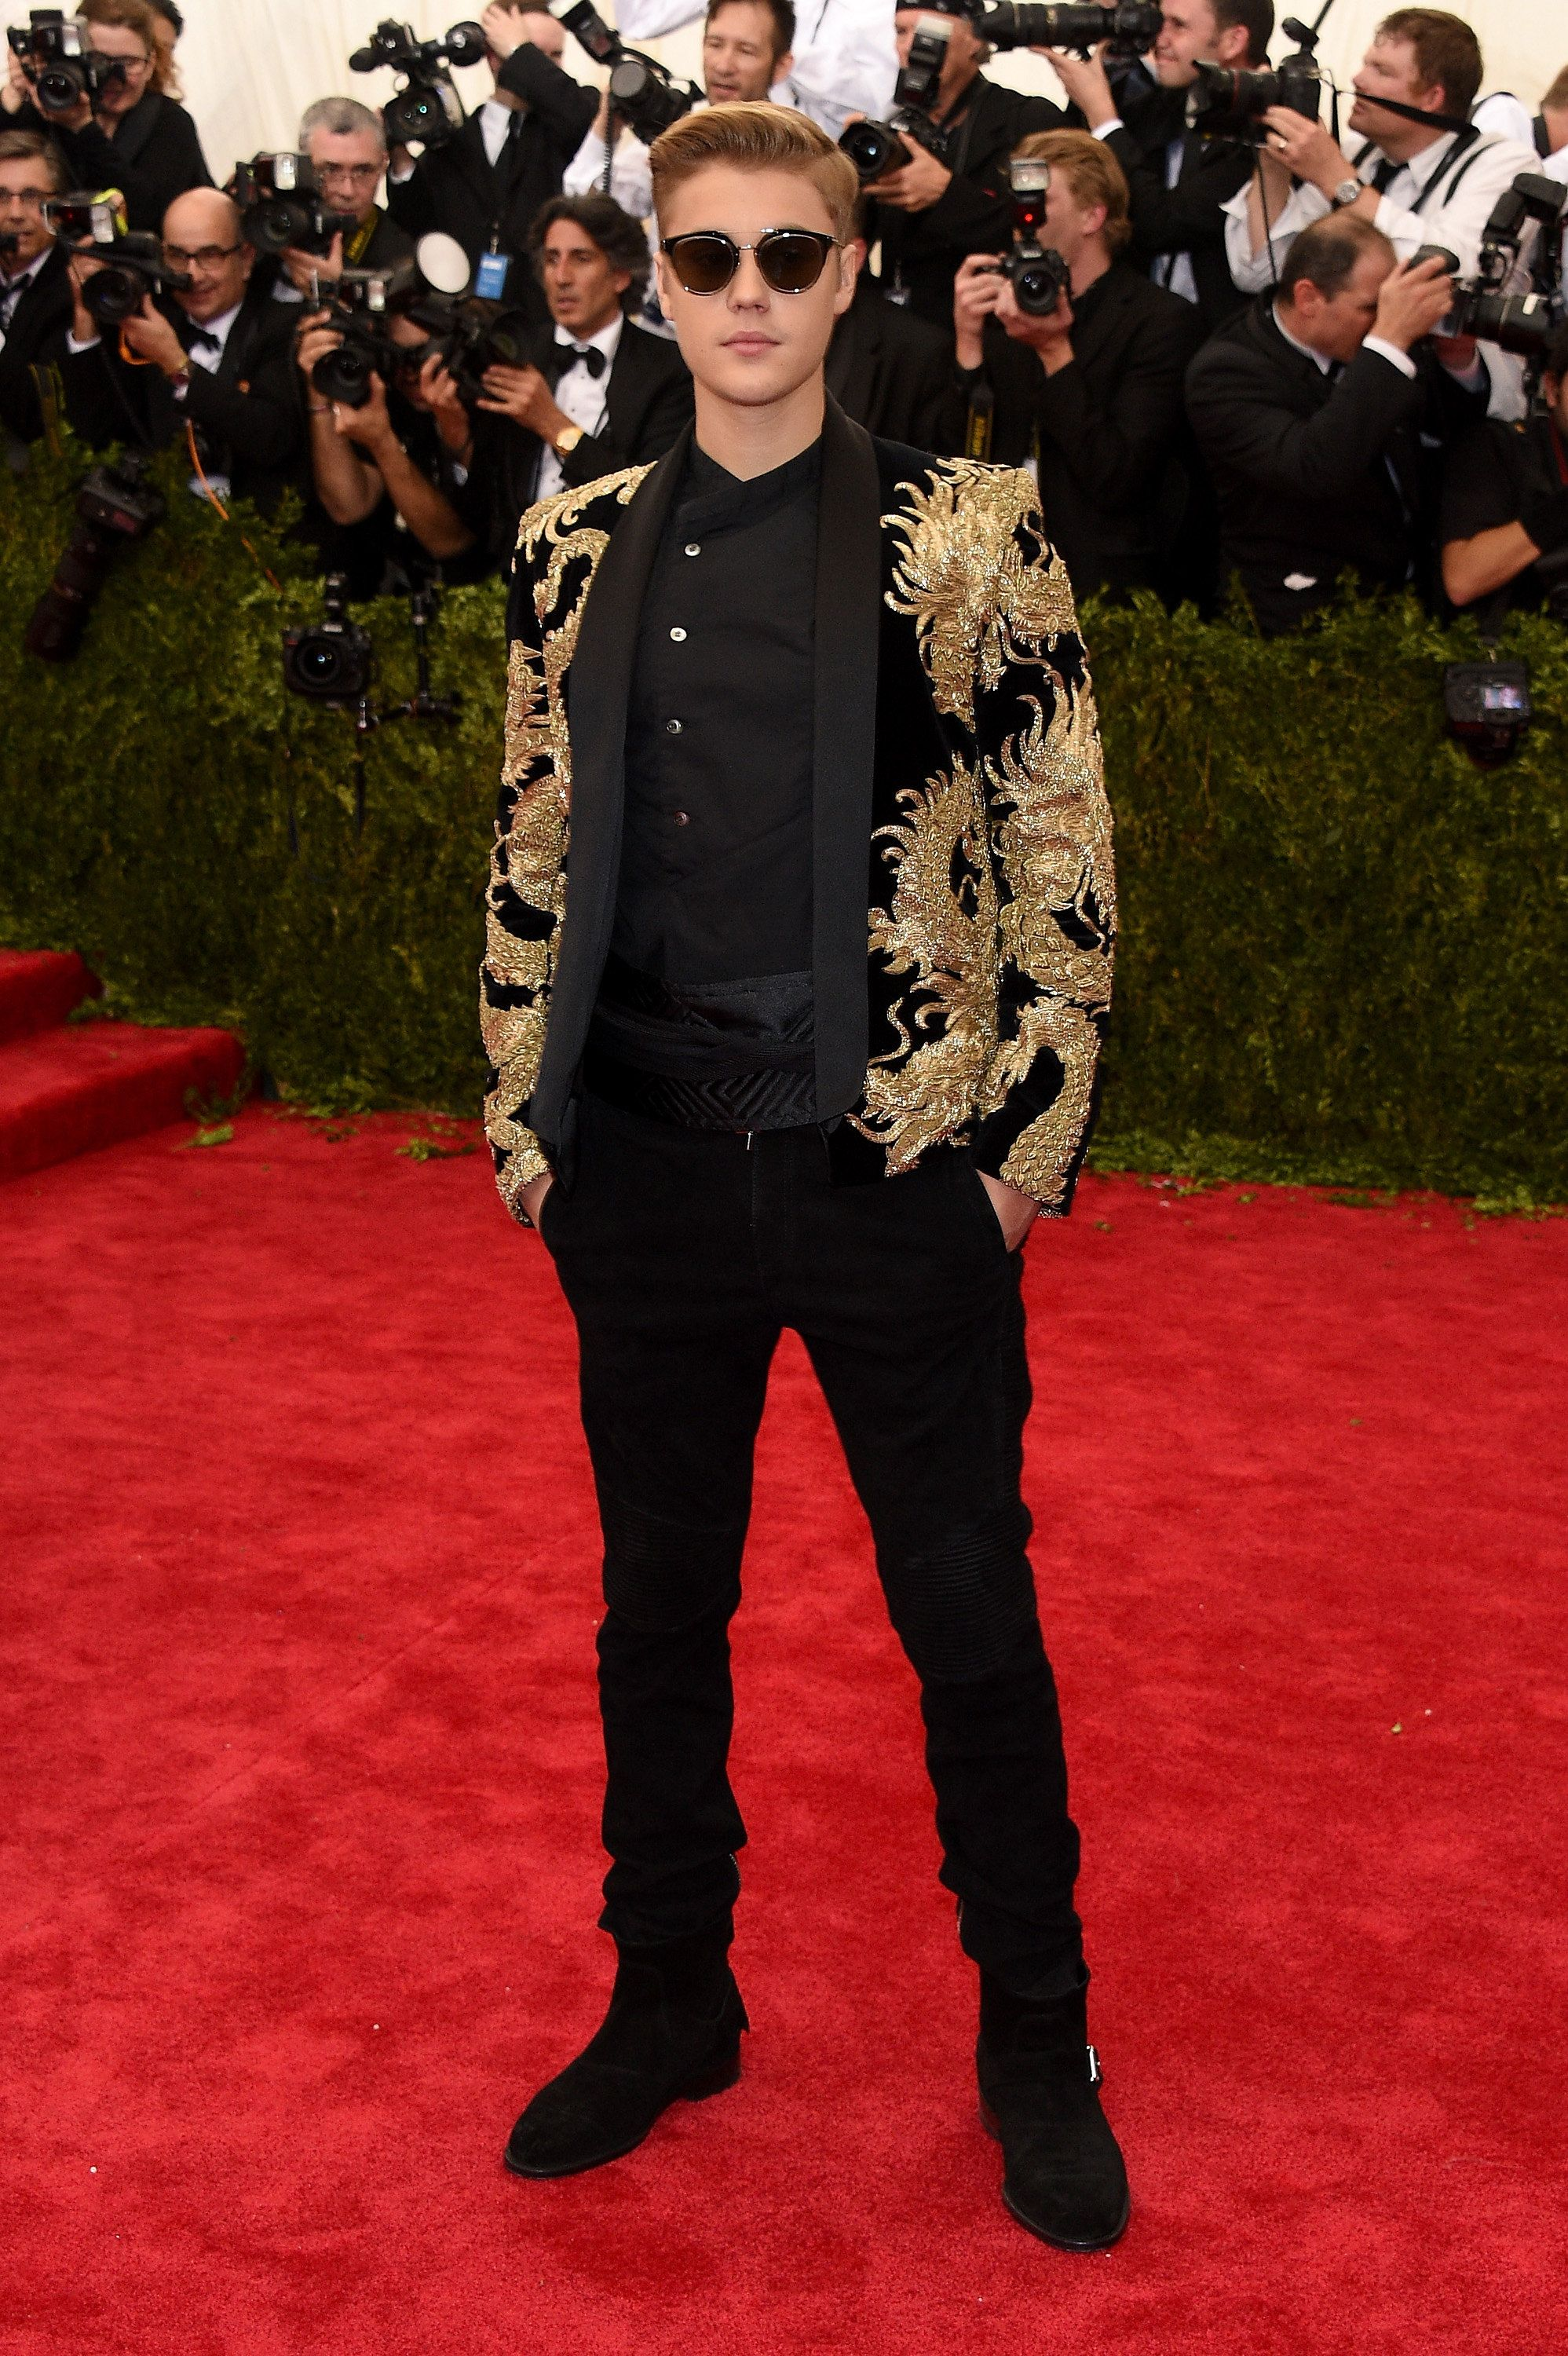 Met Gala 2015 Fashion: Live from the Red Carpet   Just a boy from ...